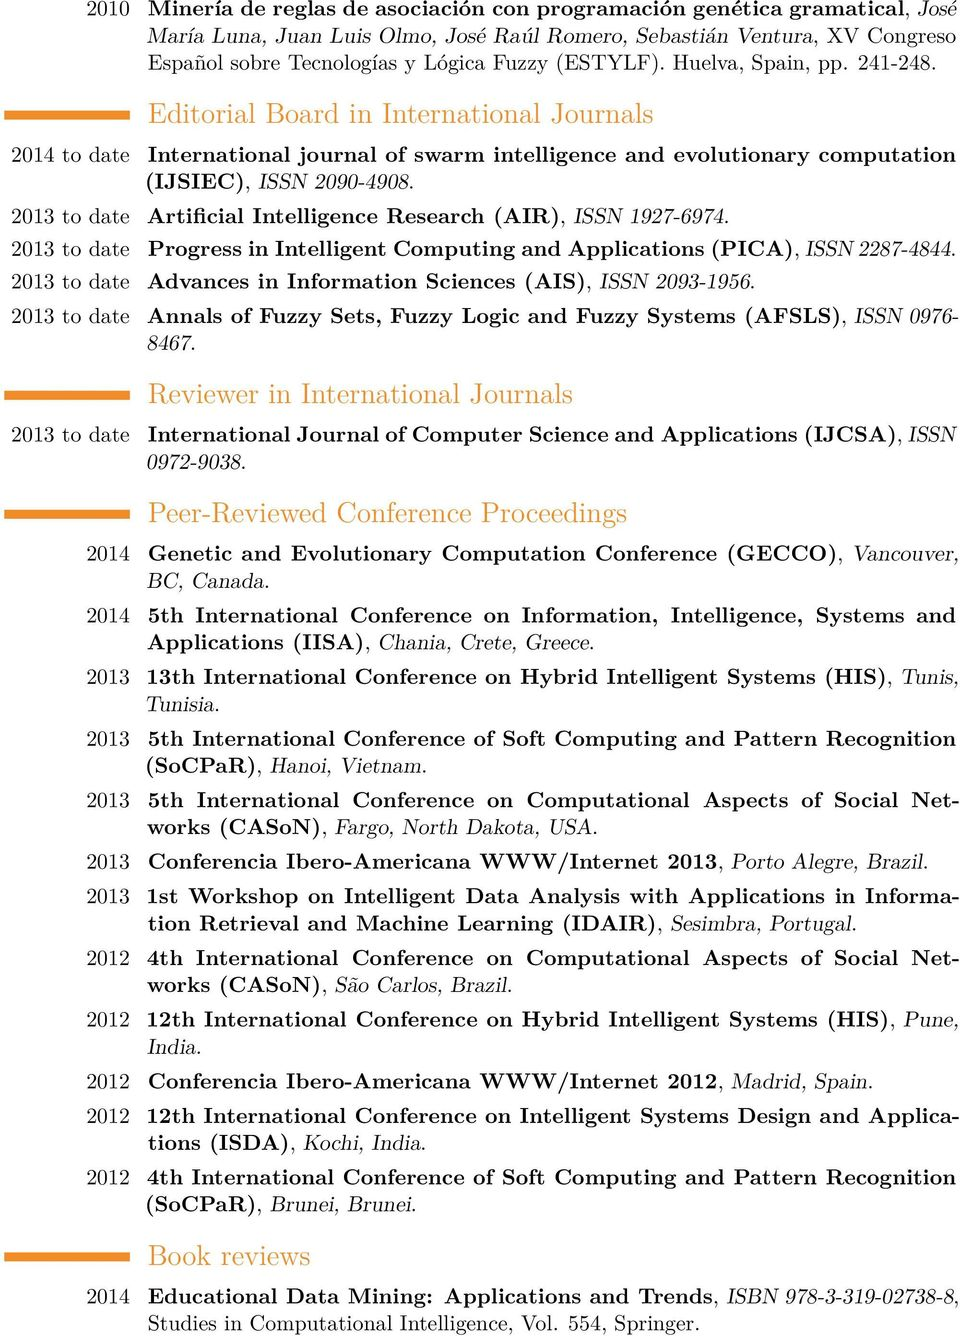 2013 to date Artificial Intelligence Research (AIR), ISSN 1927-6974. 2013 to date Progress in Intelligent Computing and Applications (PICA), ISSN 2287-4844.